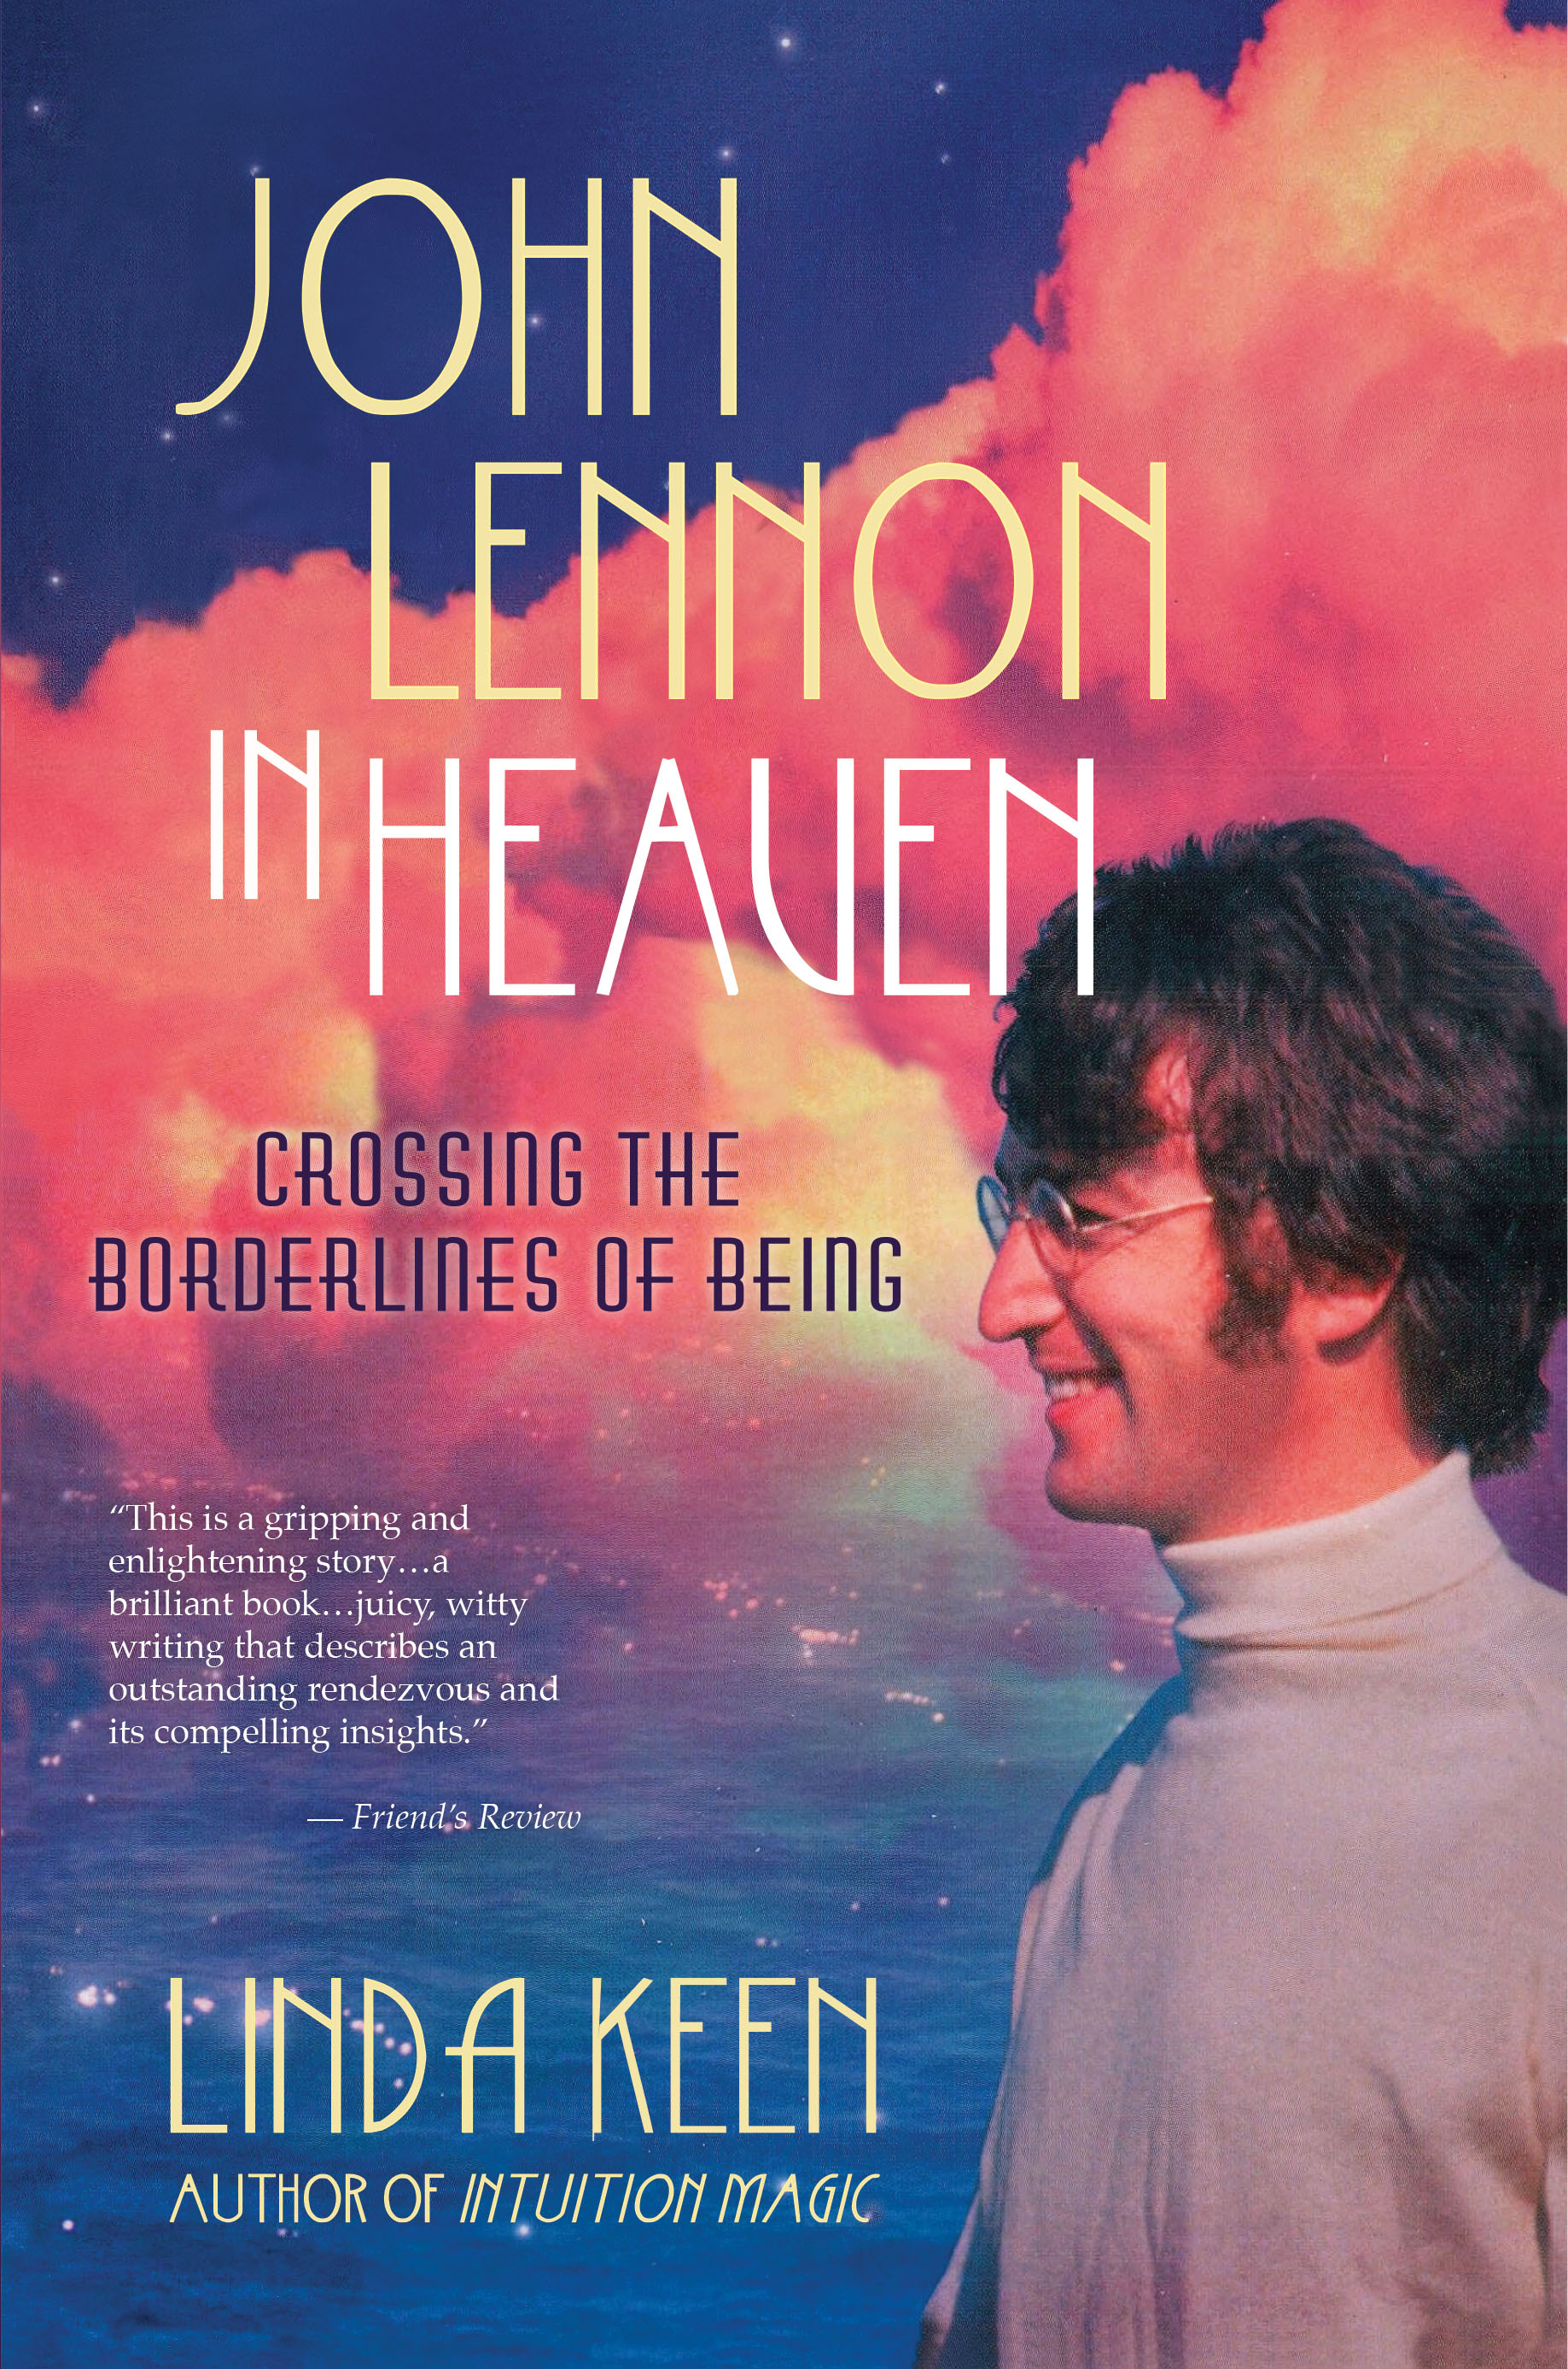 Journeys Across Seas of the Collective Consciousness |   Each page celebrates Lennon's profound messages of peace, his belief in humanity's divine nature, and his own reverence for the magic of the creative spirit.